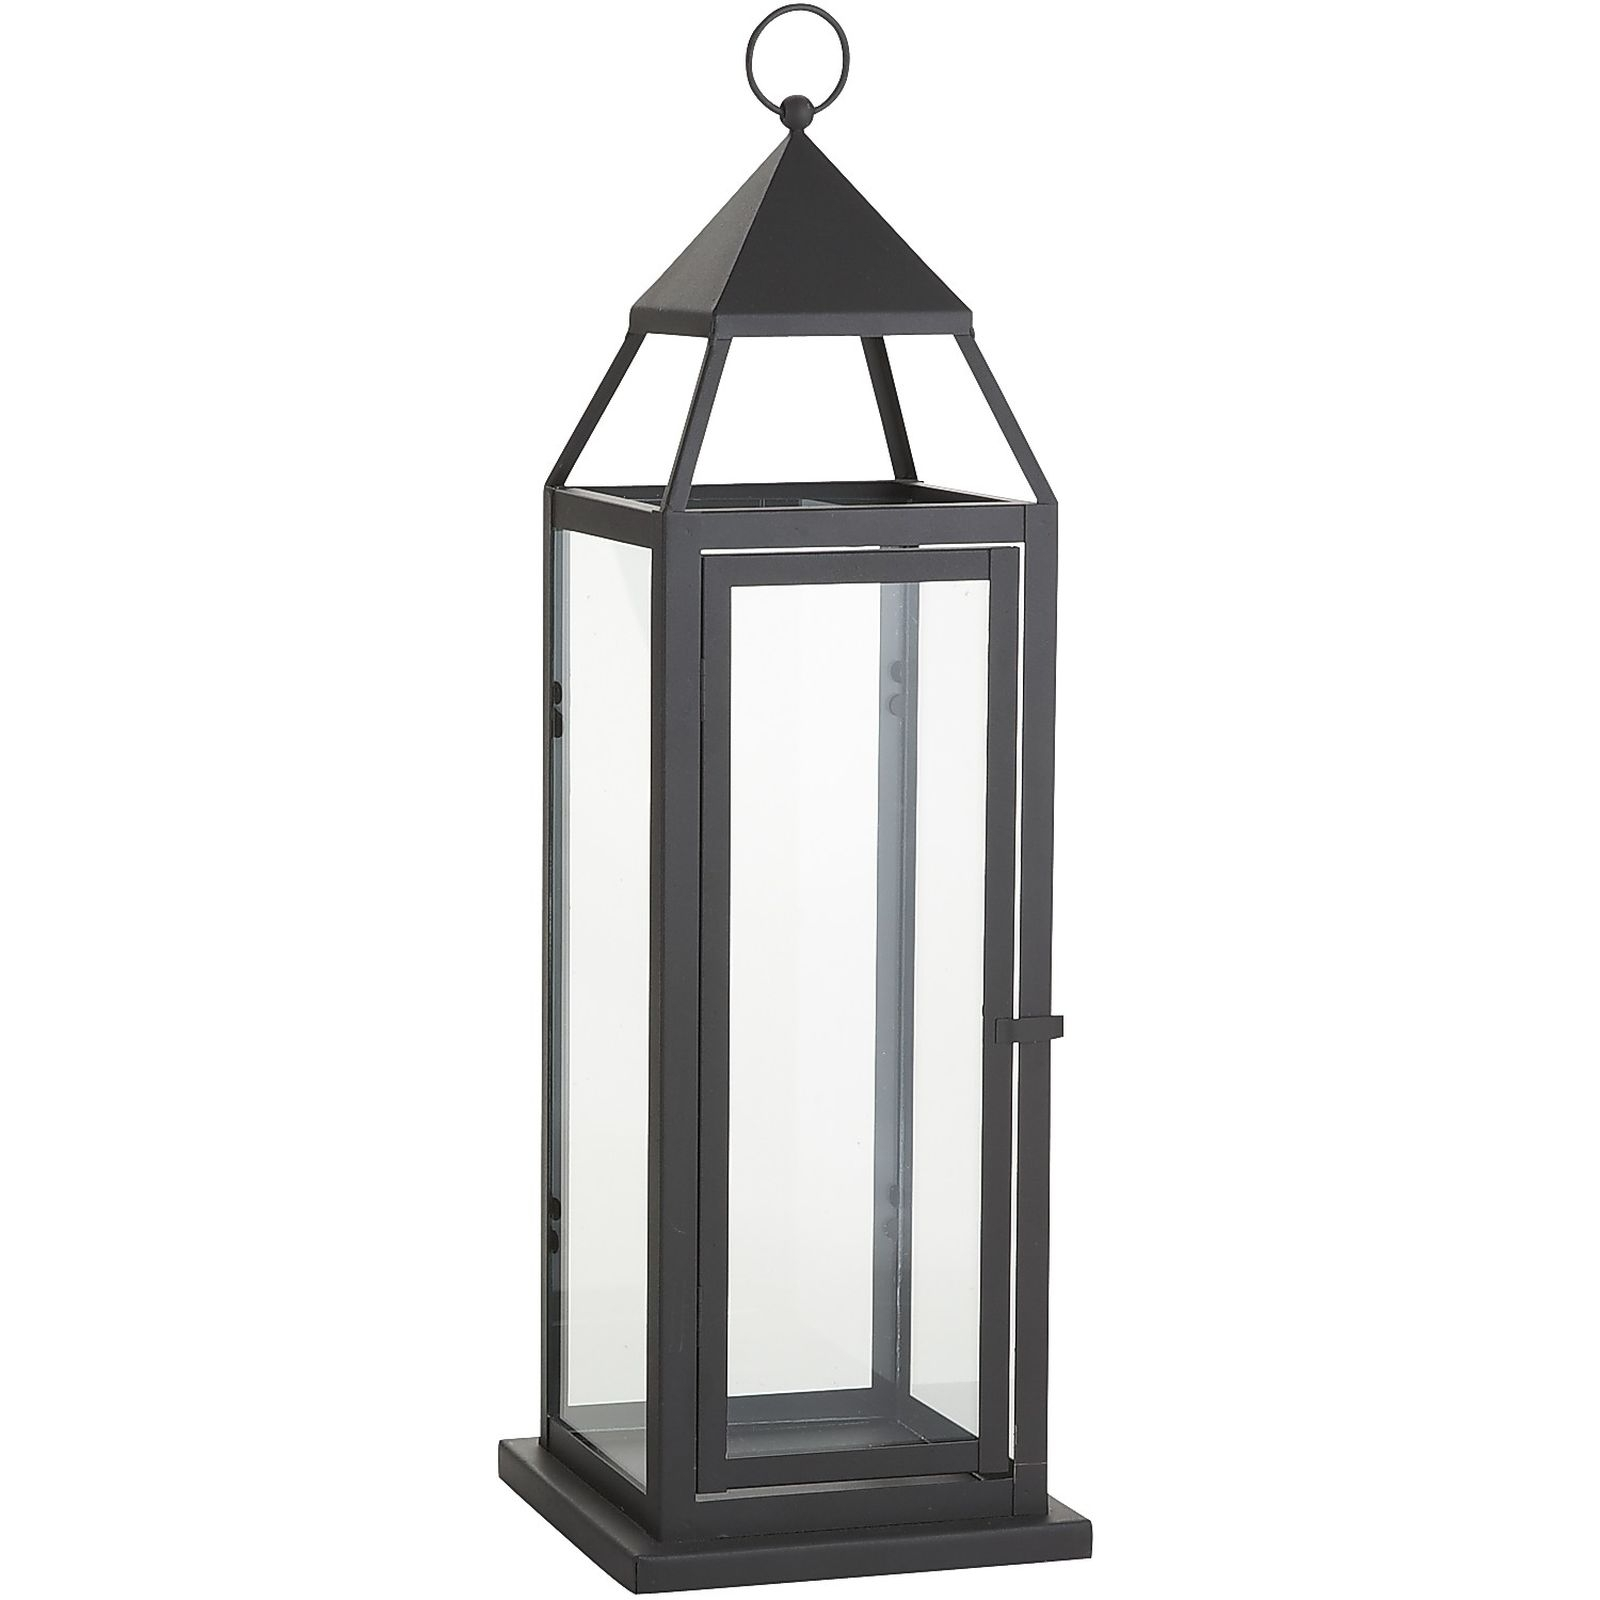 Inspiration about Garden & Outdoor: Dazzling Candle Lanterns For Outdoor Lighting With Regard To Outdoor Hanging Candle Lanterns (#3 of 15)